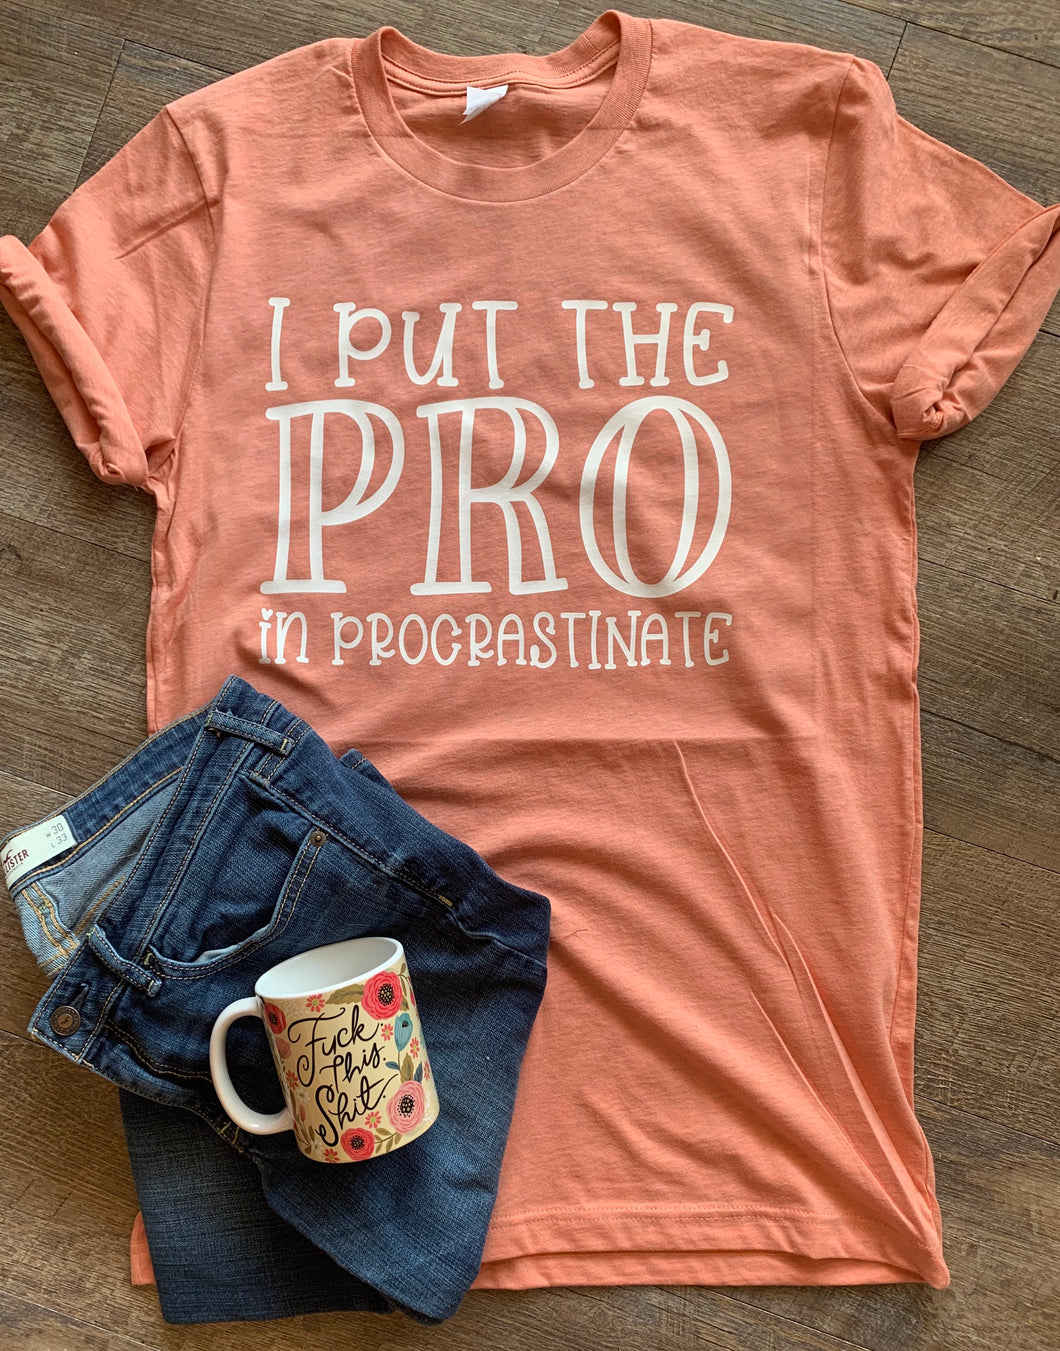 I put the pro in procrastinate // funny graphic tee - Mavictoria Designs Hot Press Express